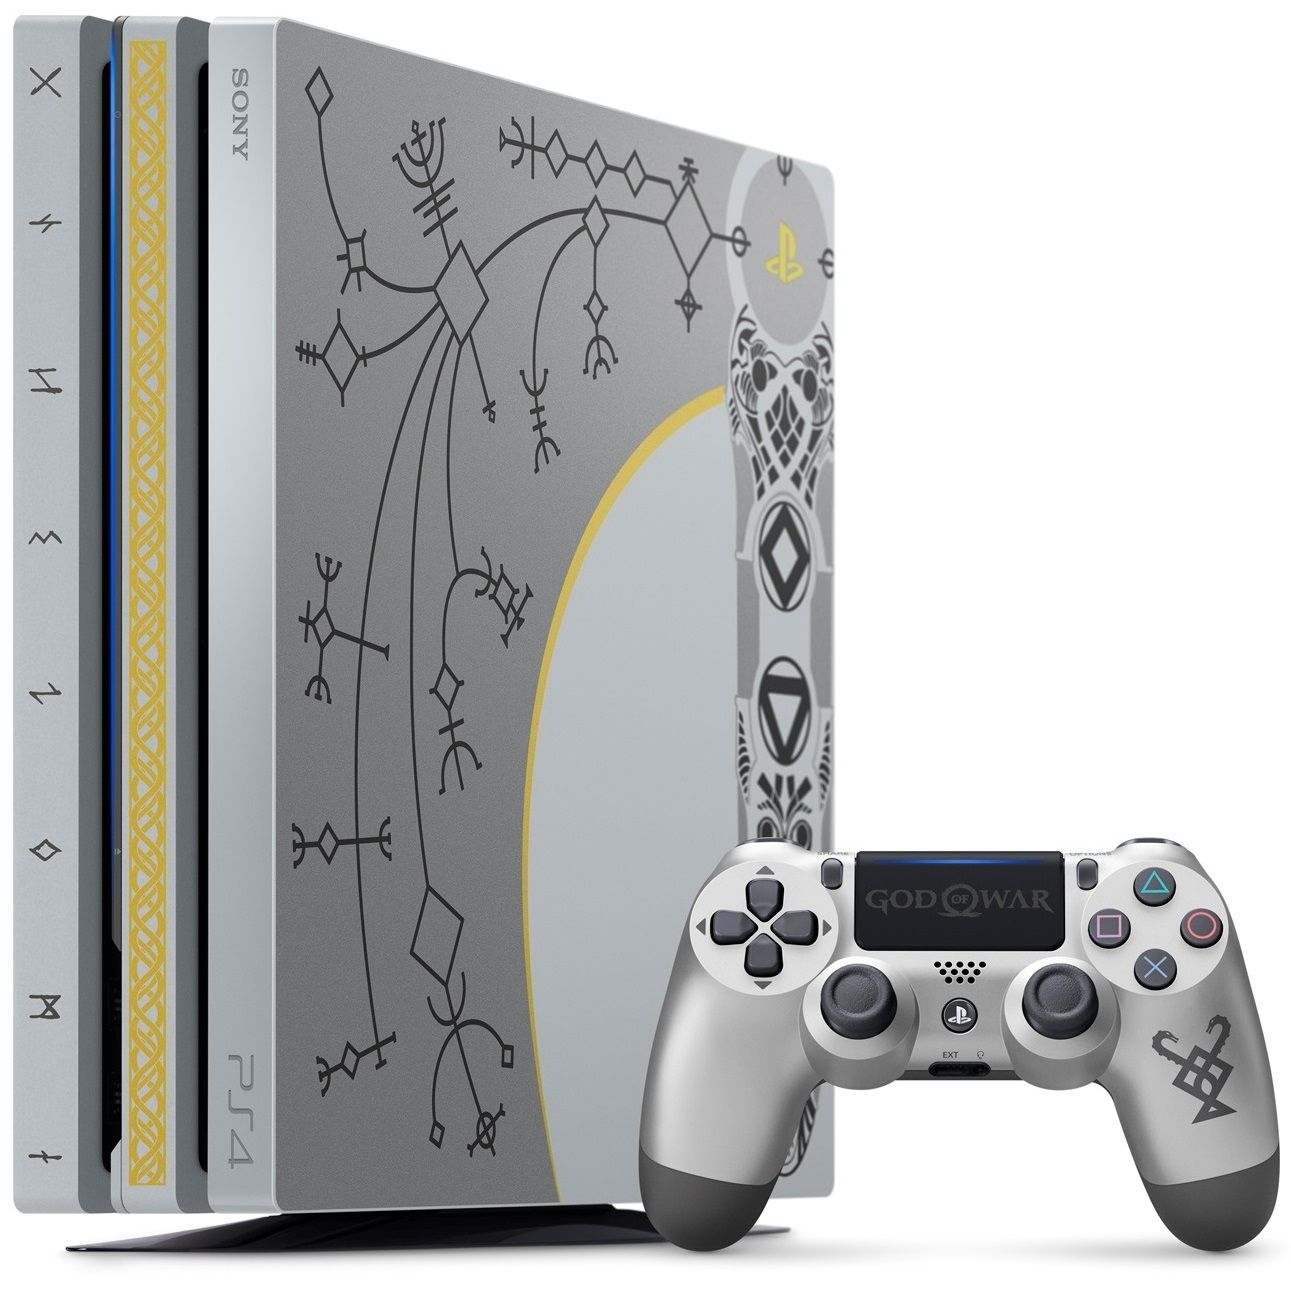 Sony Ps4 Console Pro 1tb Cuh 7116b Leviathan Grey God Of War Limited Stik New Model Glacier White Edition